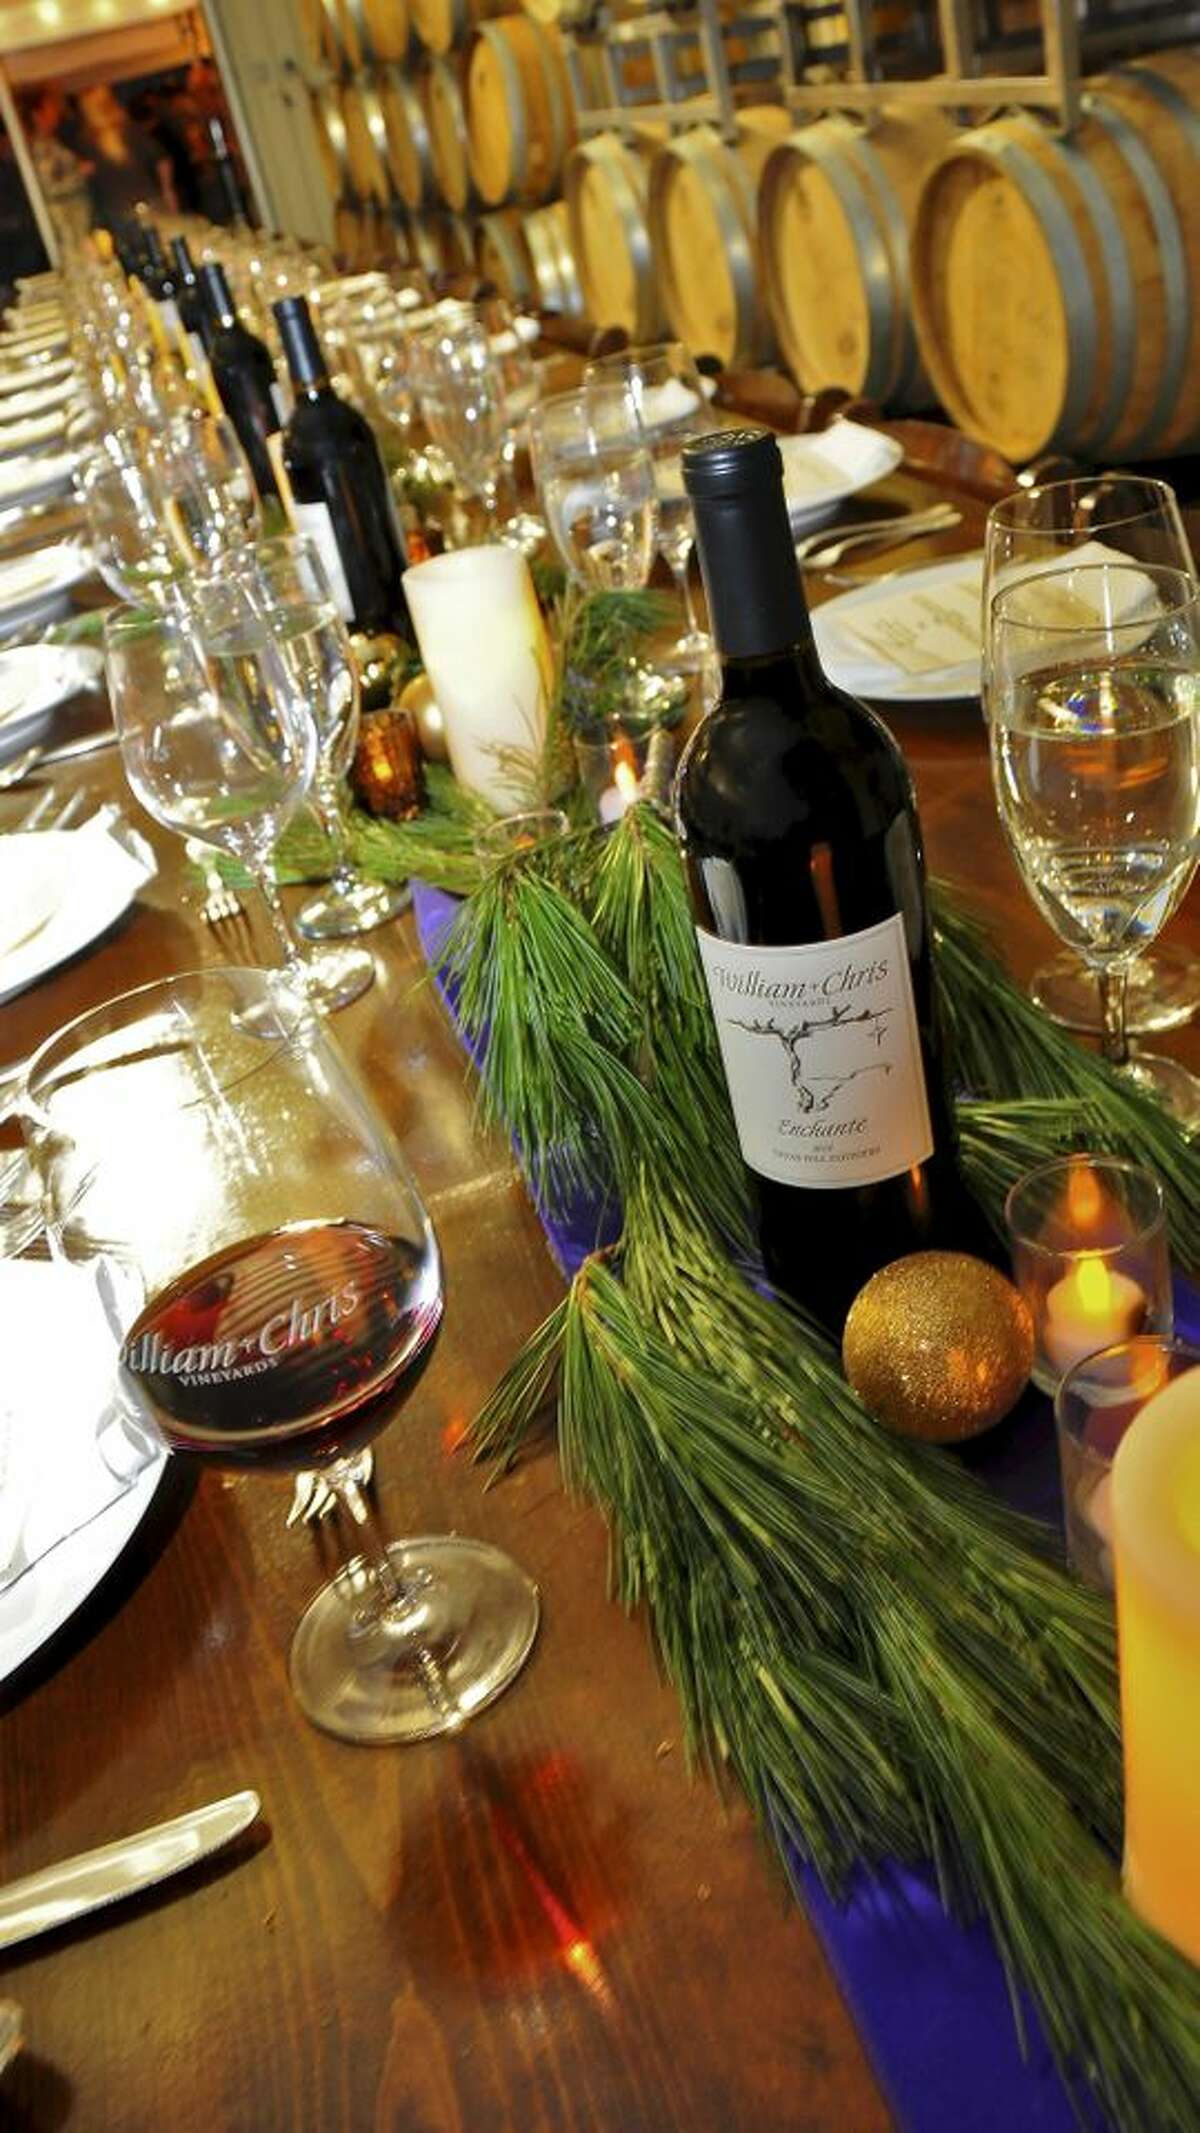 William Chris Winery is one of many in the Hill Country that helps visitors get in the holiday spirit with special events.